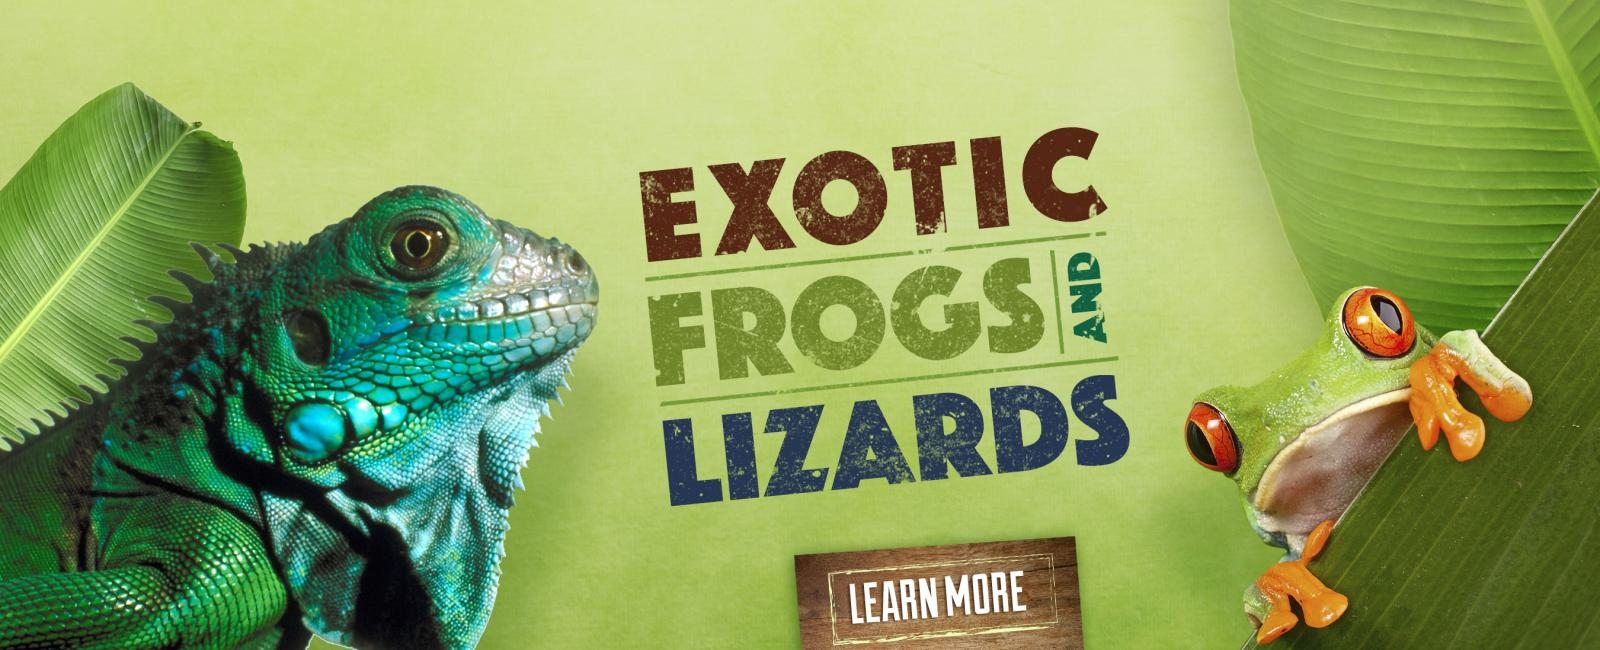 Frogs and Lizards